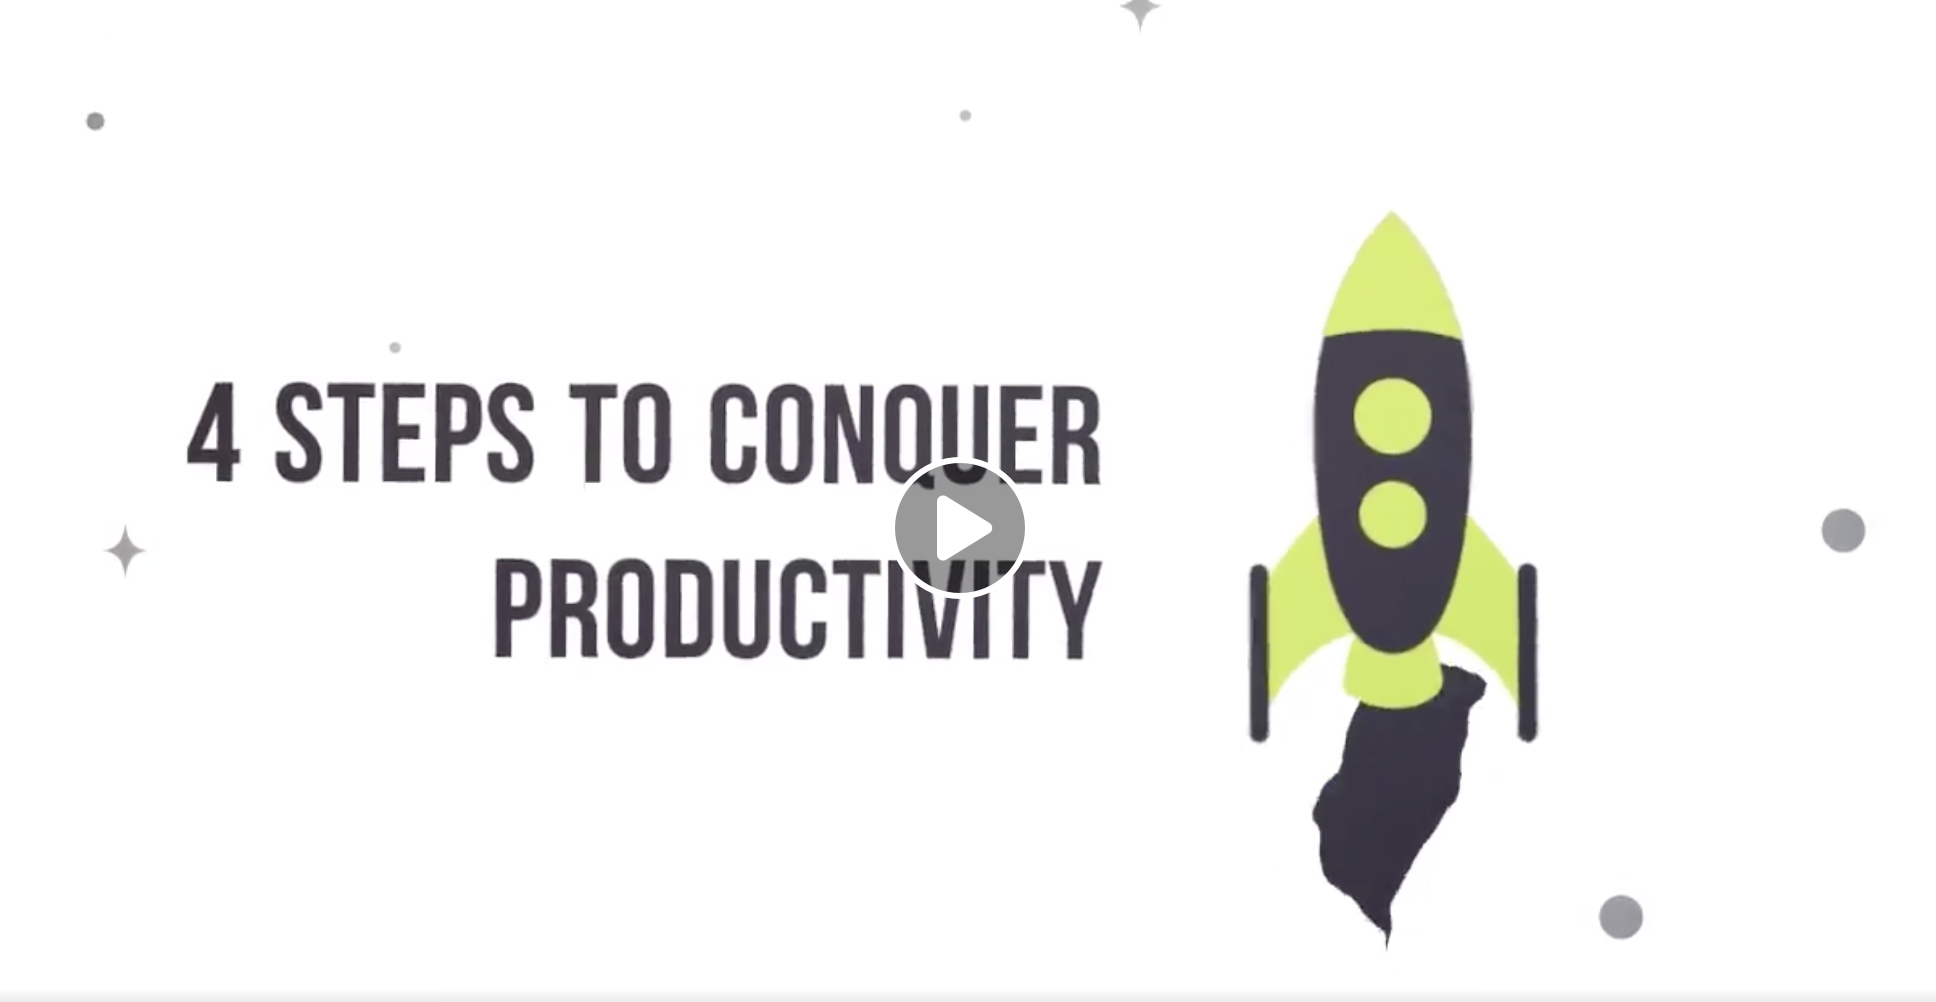 4 Steps to Conquer Productivity